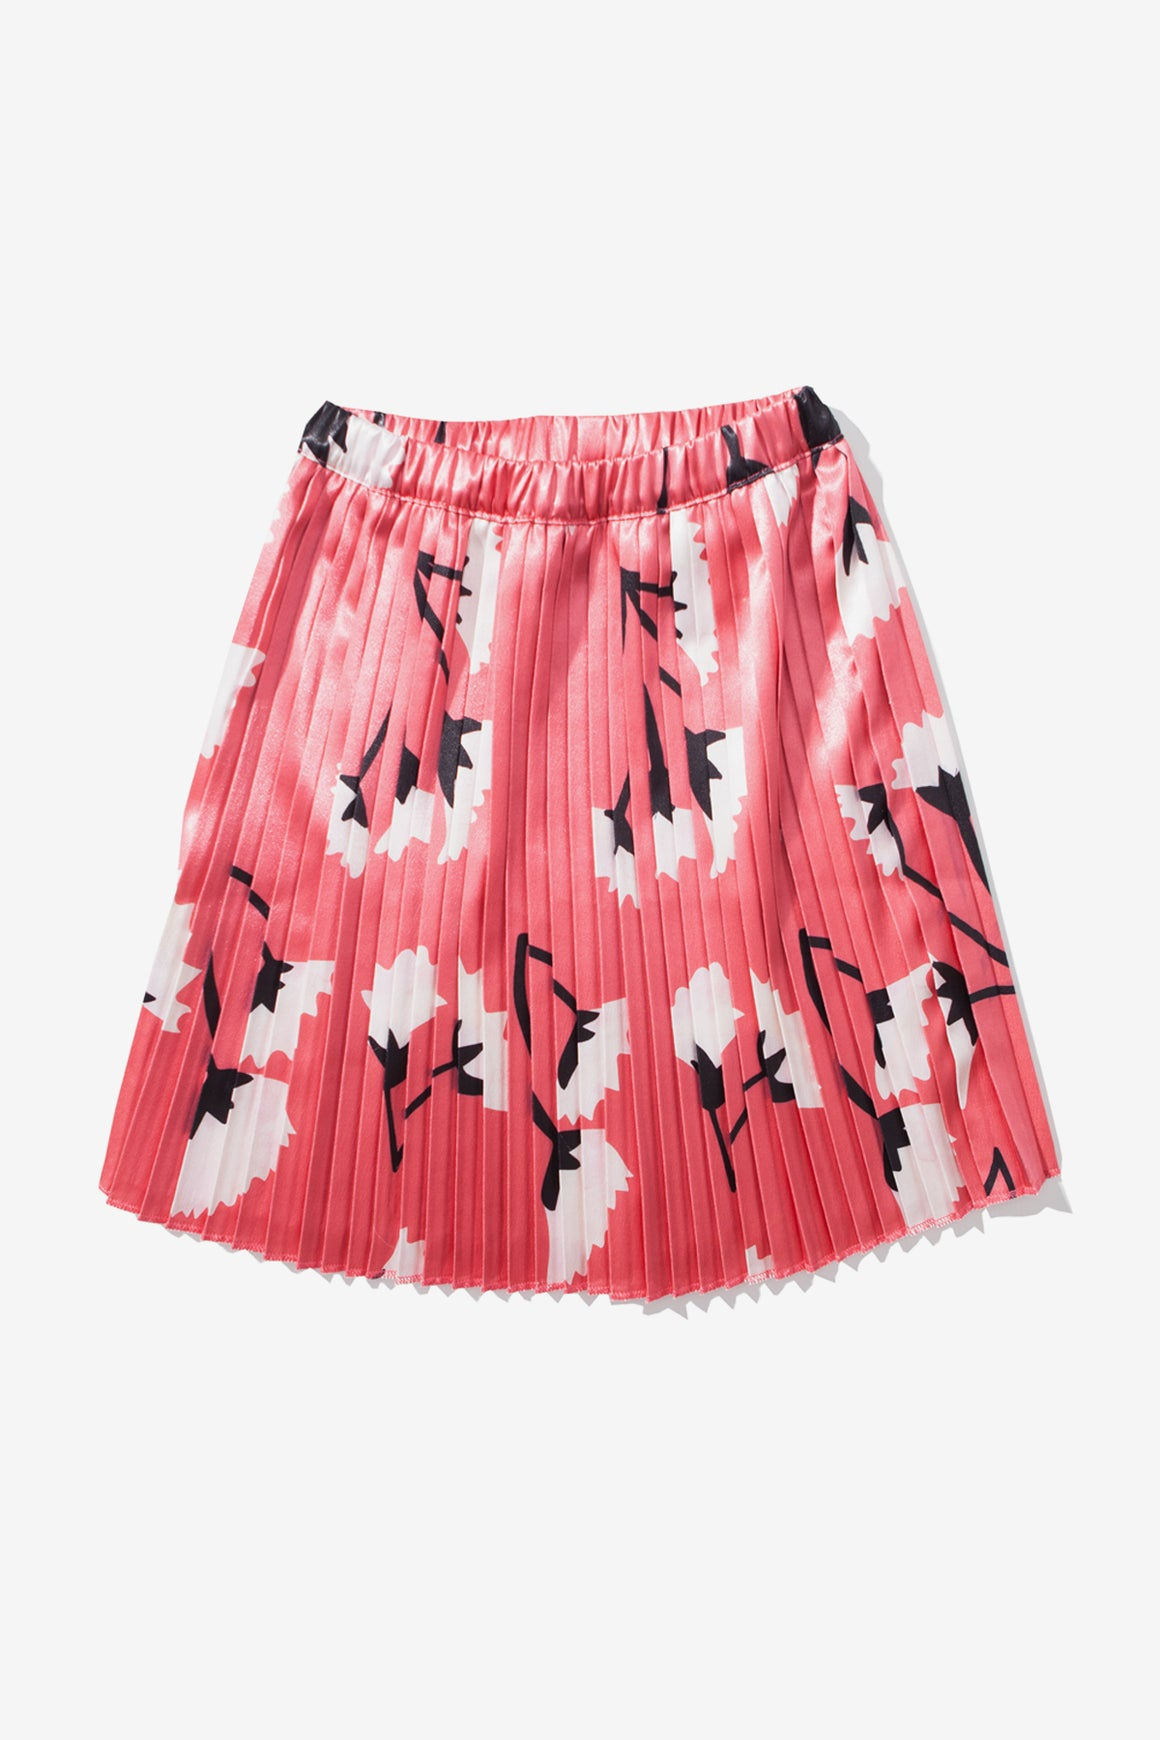 Munster Kids Savana Skirt